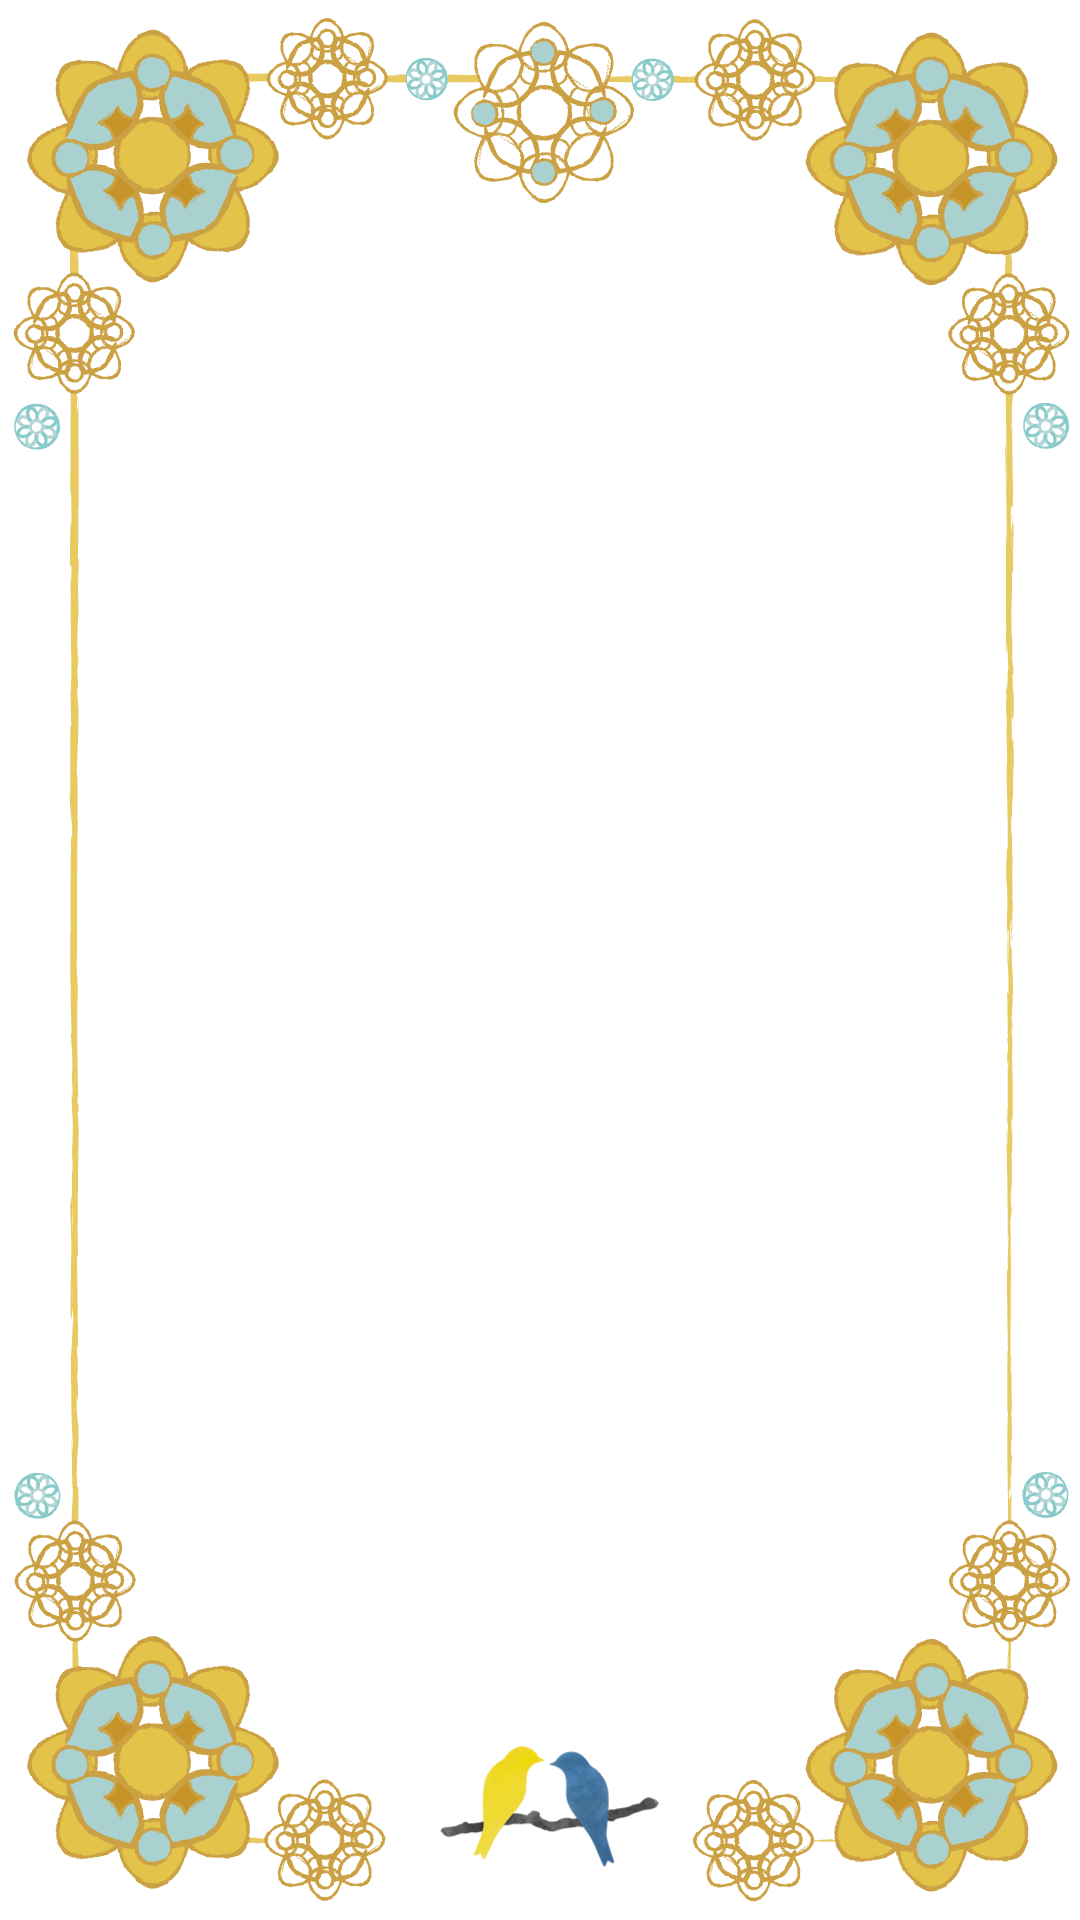 Snapchat border clipart banner royalty free download Snapchat Geofilter – Upload to Snapchat for your Summer pop ... banner royalty free download